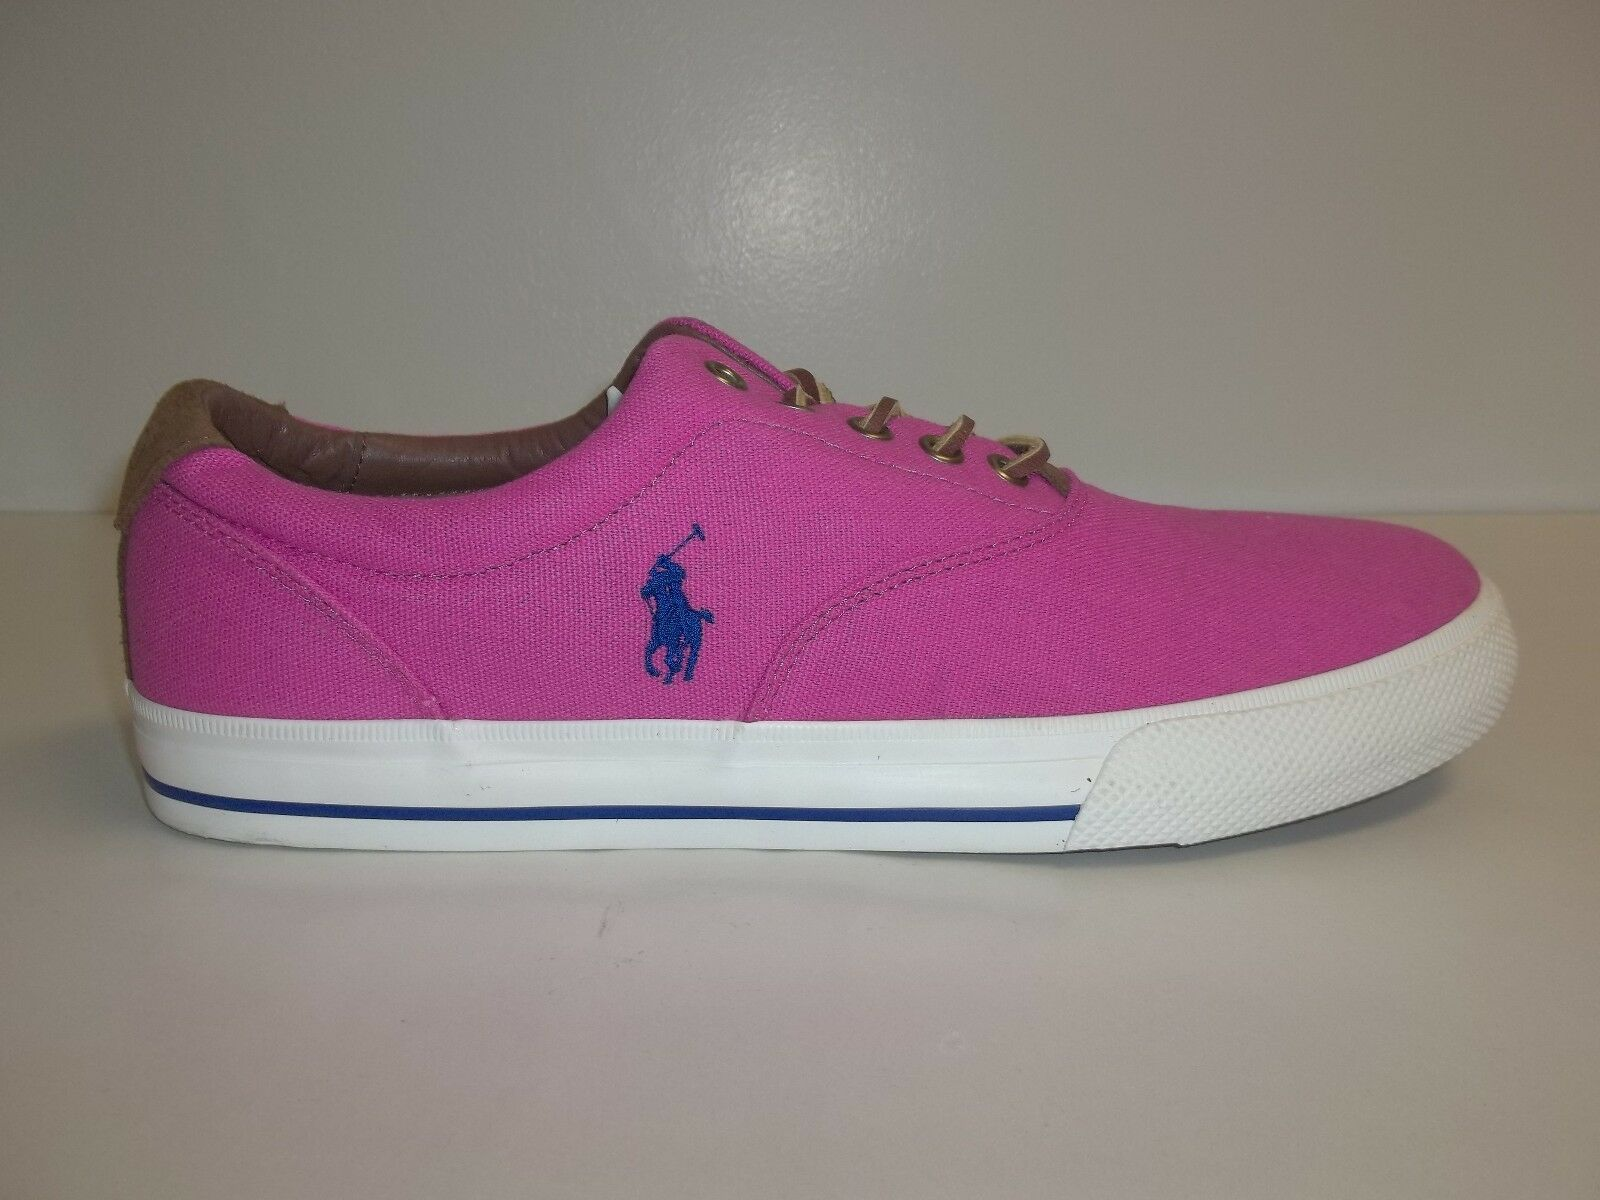 Polo Ralph Lauren Size 11 M VAUGHN Pink Canvas Fashion Sneakers New Mens shoes